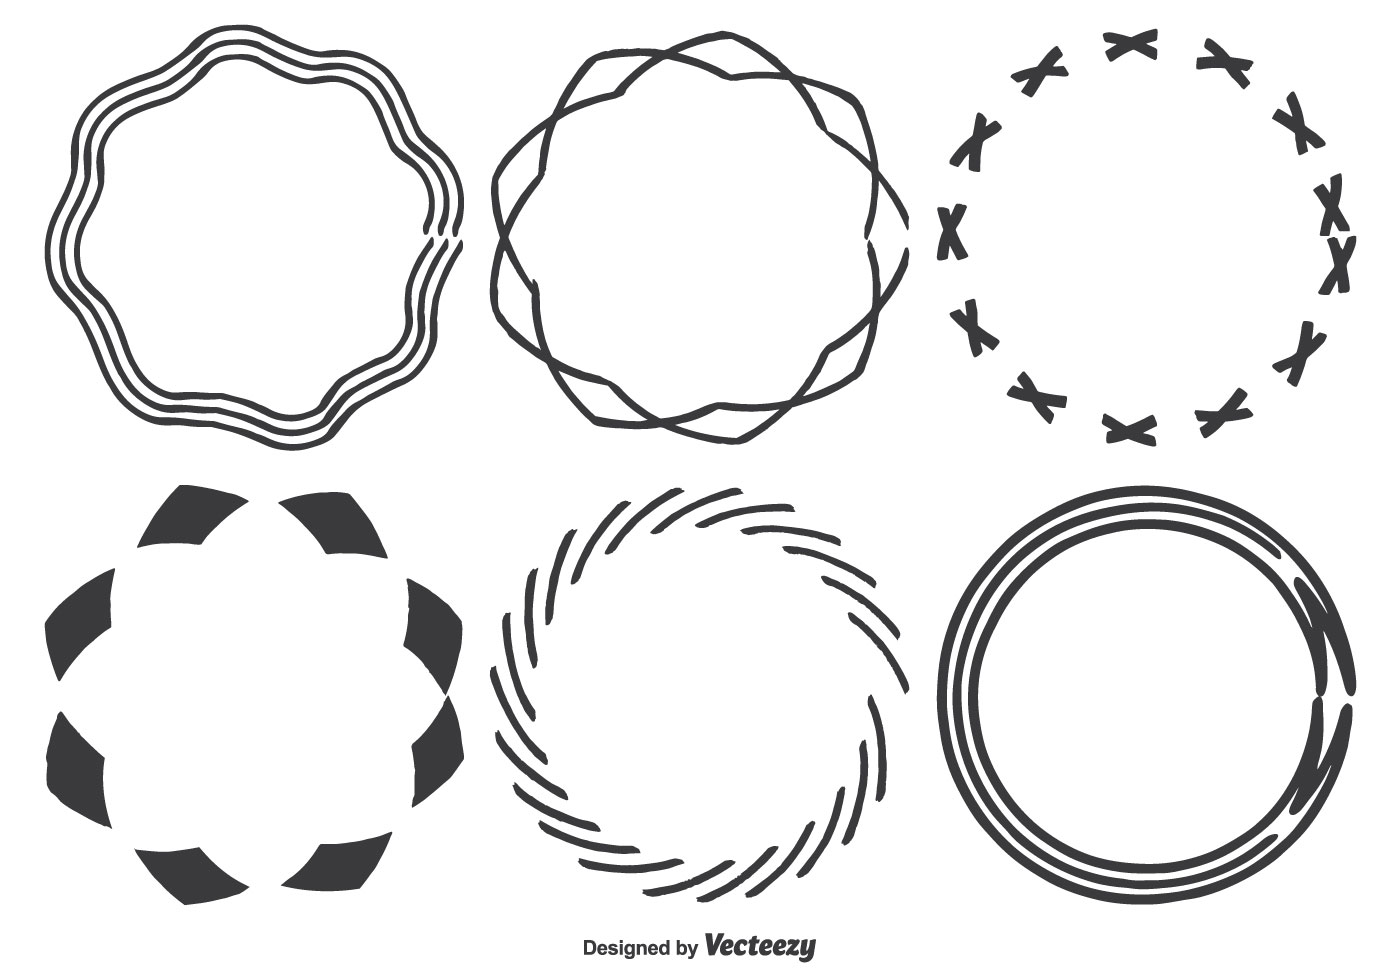 Hand Drawn Frame Shapes - Download Free Vector Art, Stock ...